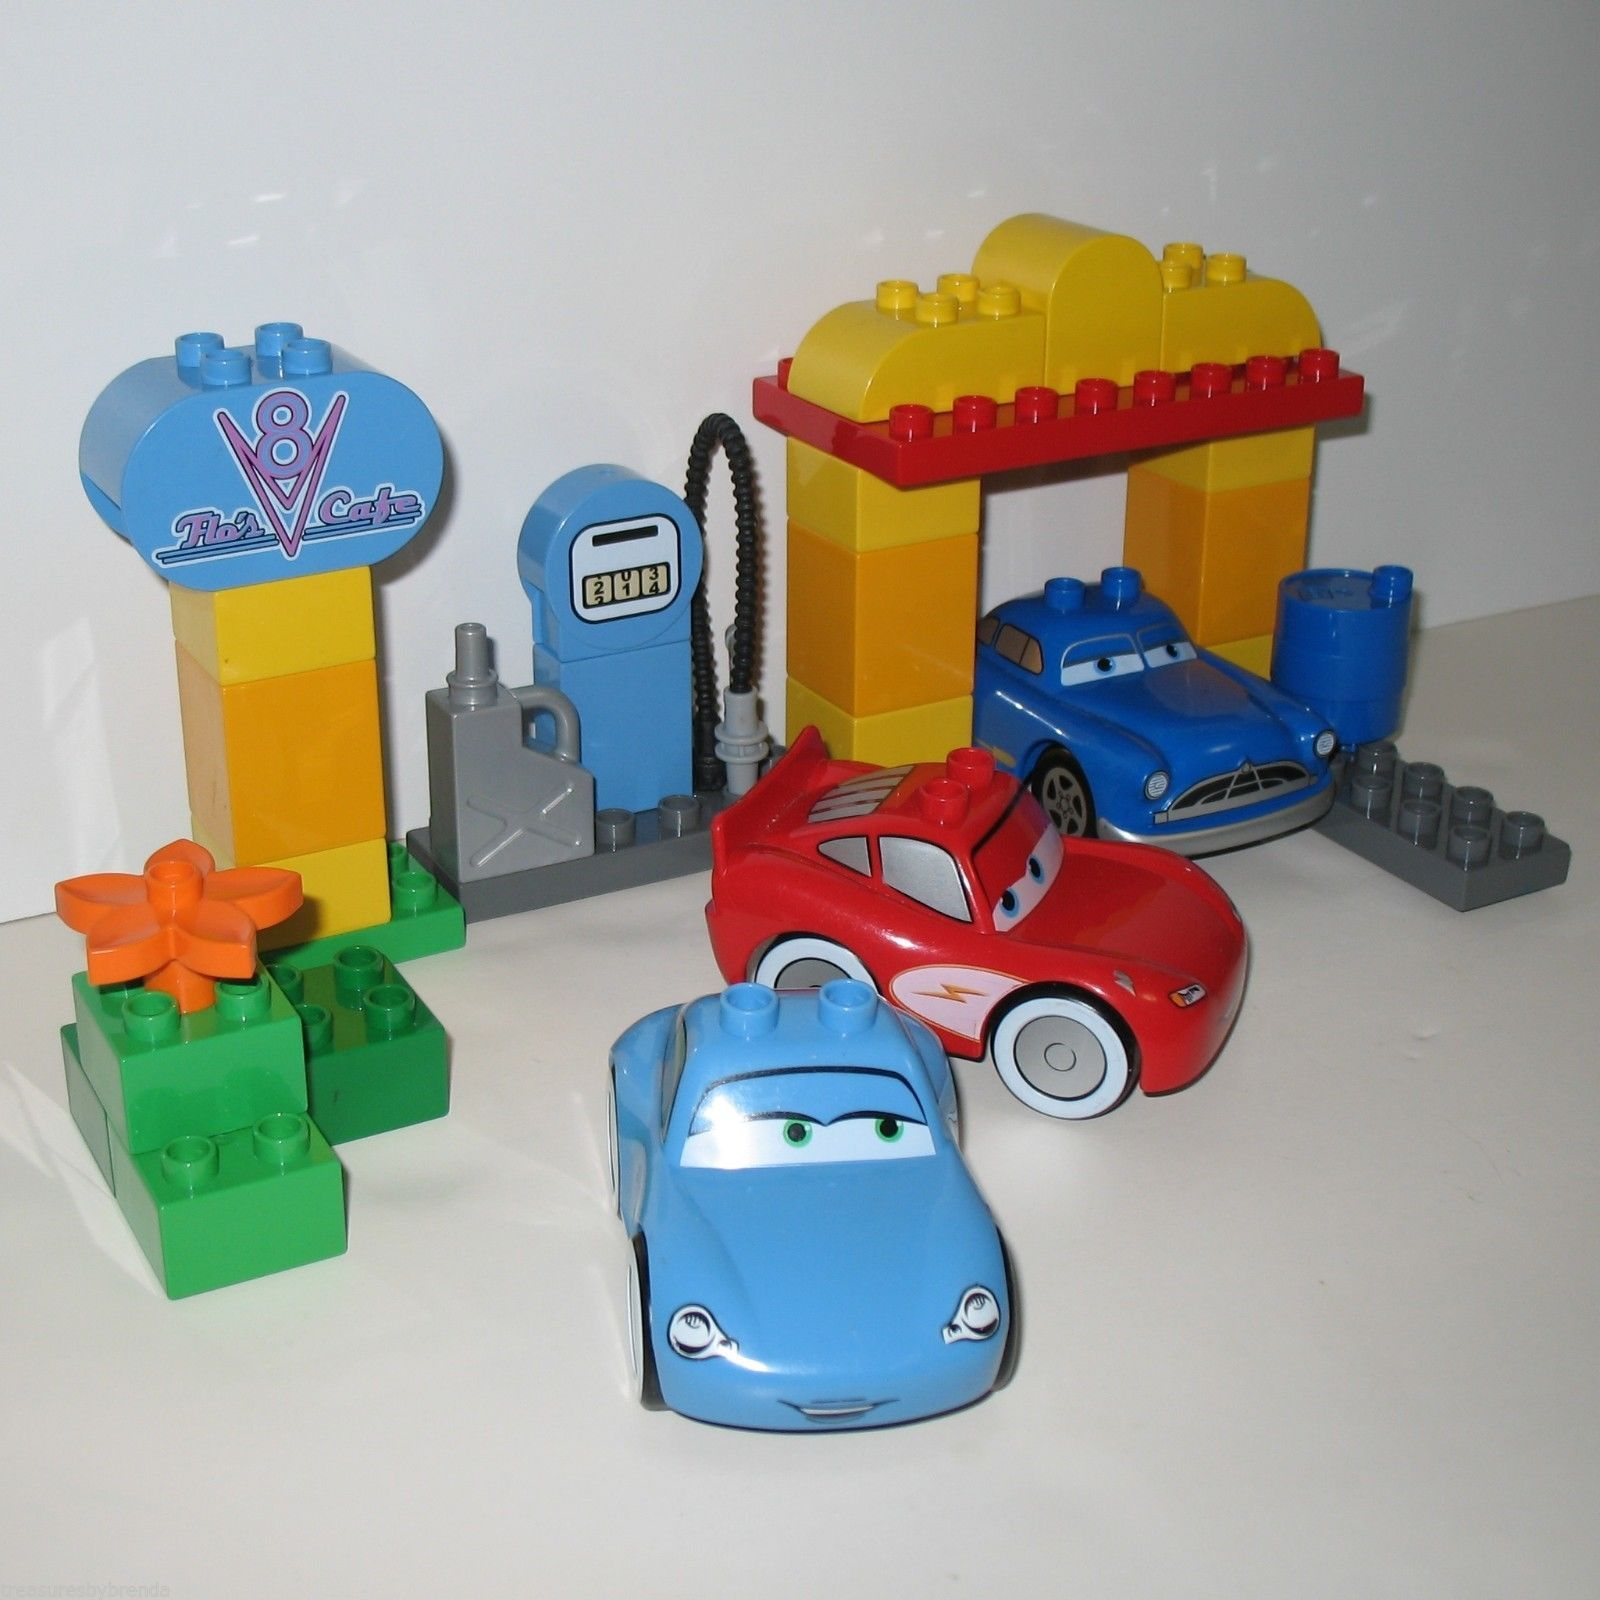 Lego Radiator rare lego duplo set, flo's v-8 cafe, has three cars from disney's